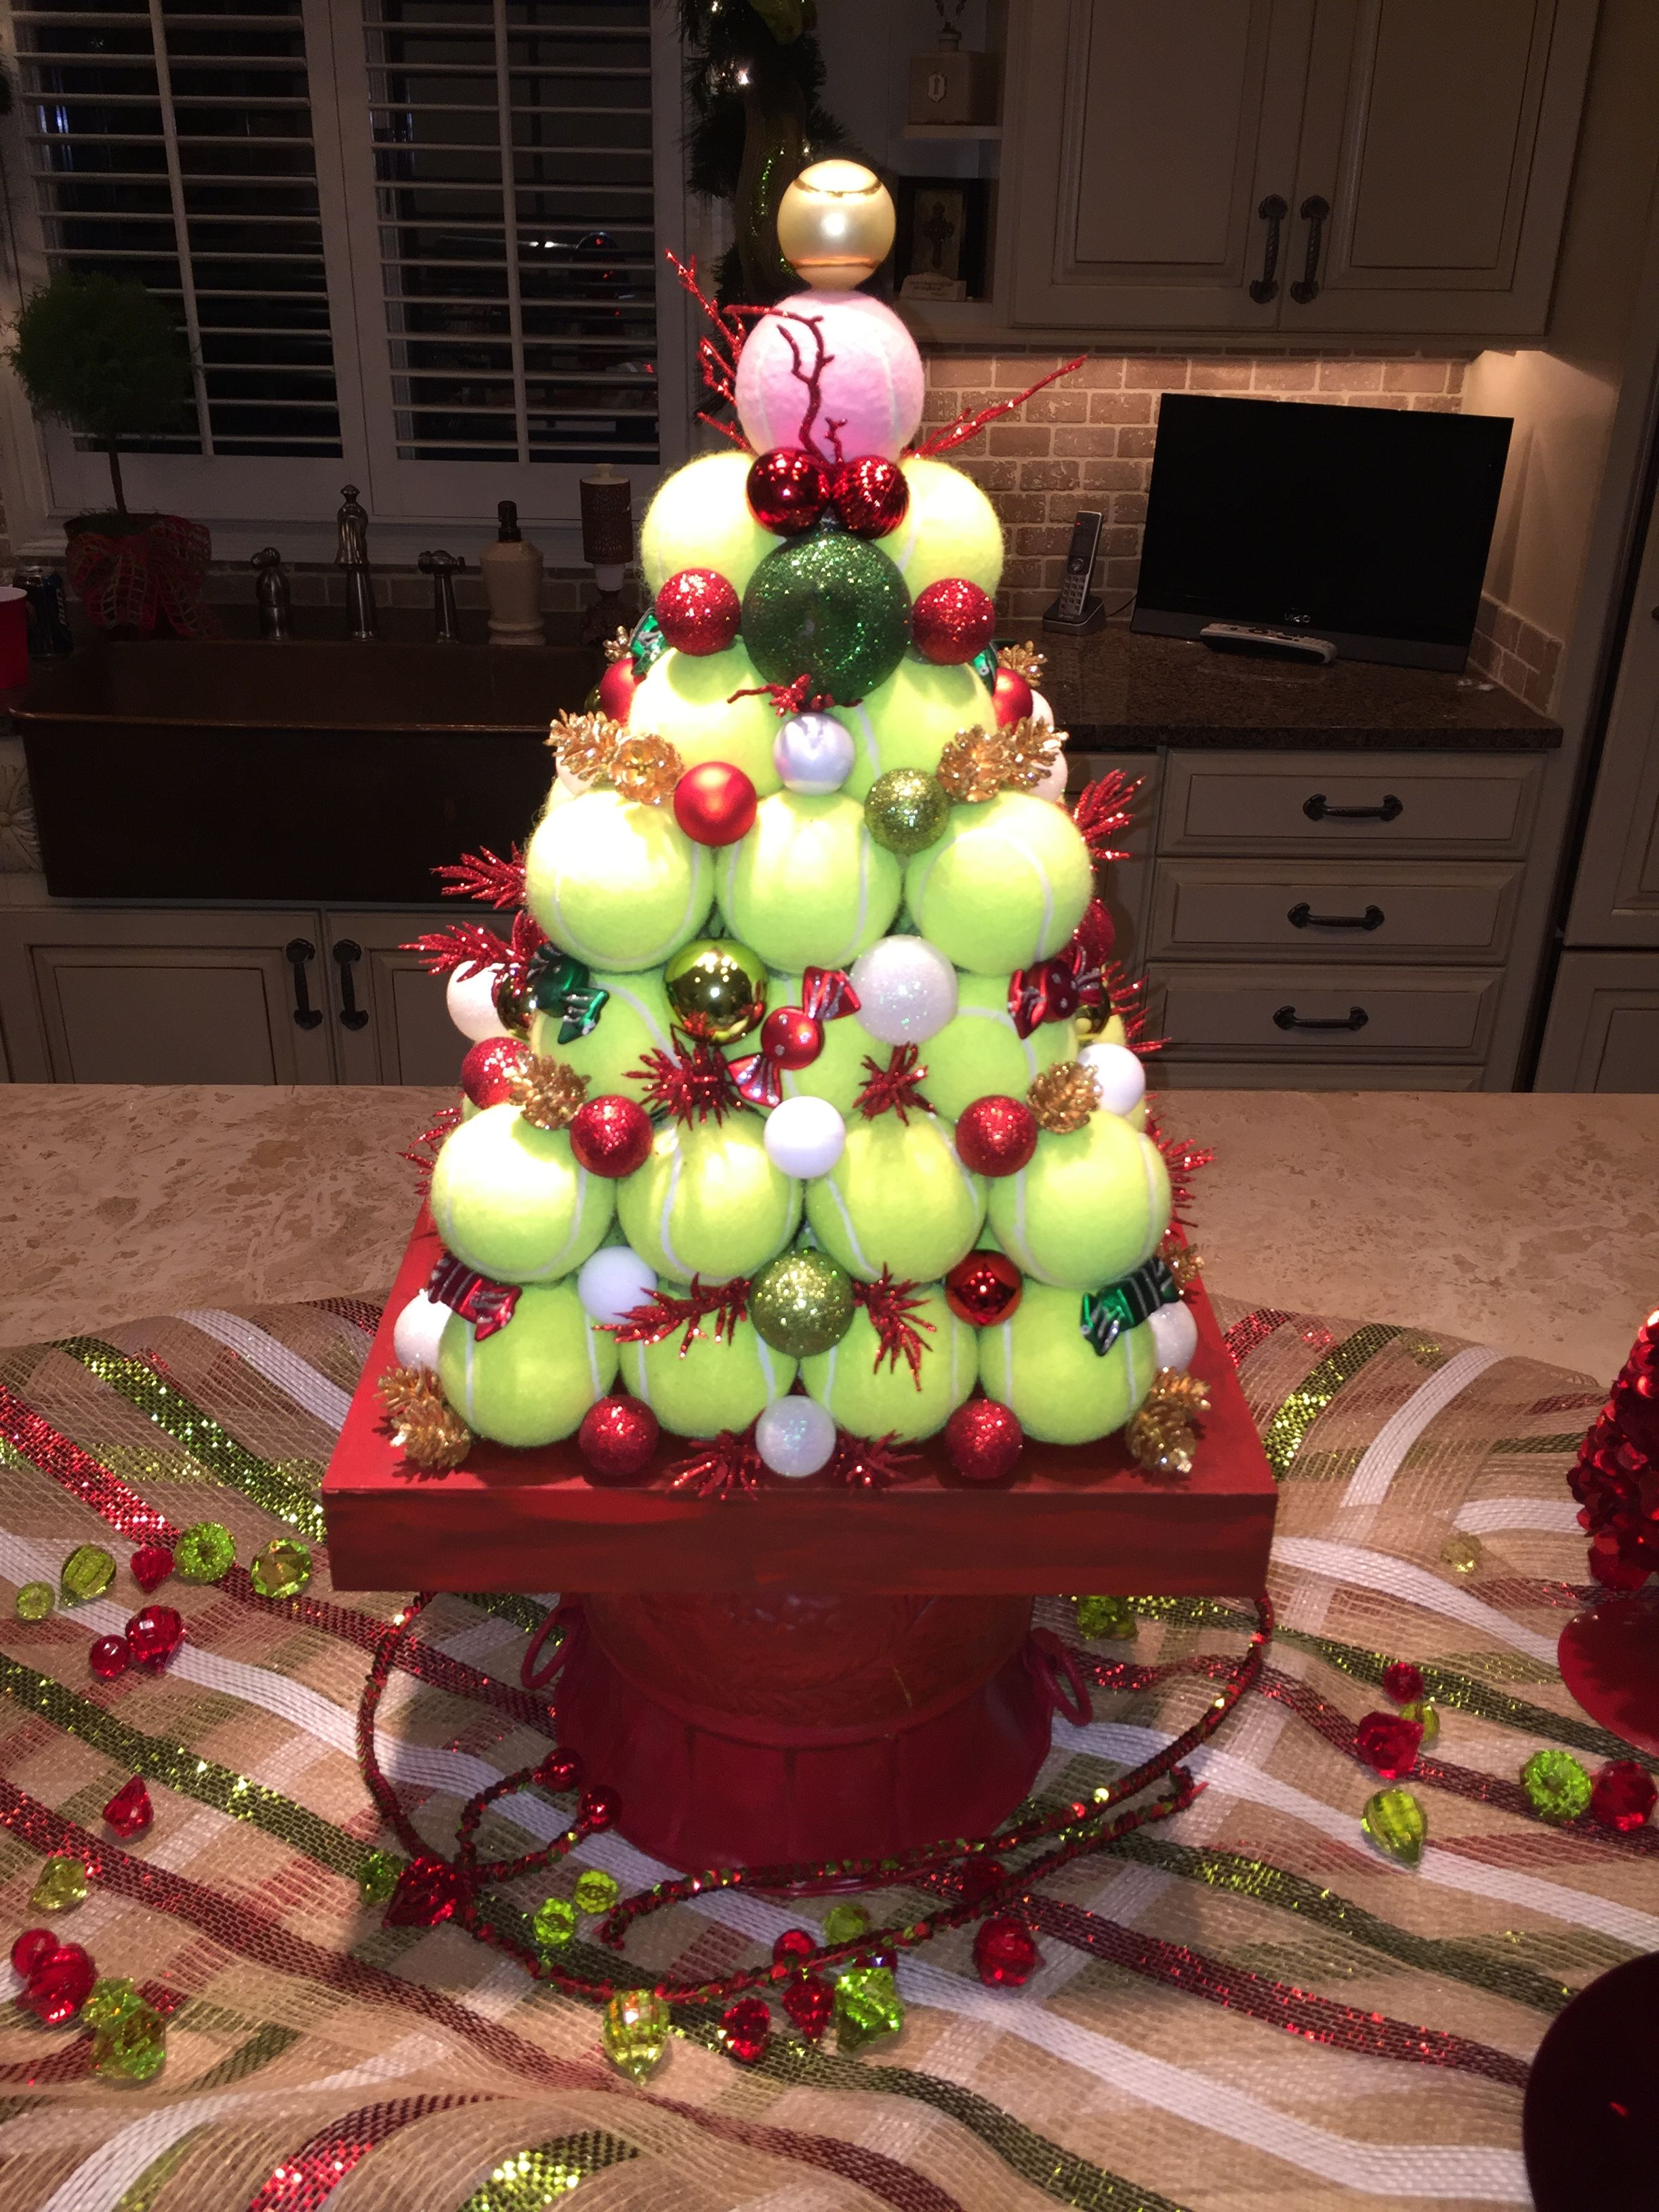 Awesome Tennis Themed Christmas Tree Centerpiece Made With Tennis Balls For